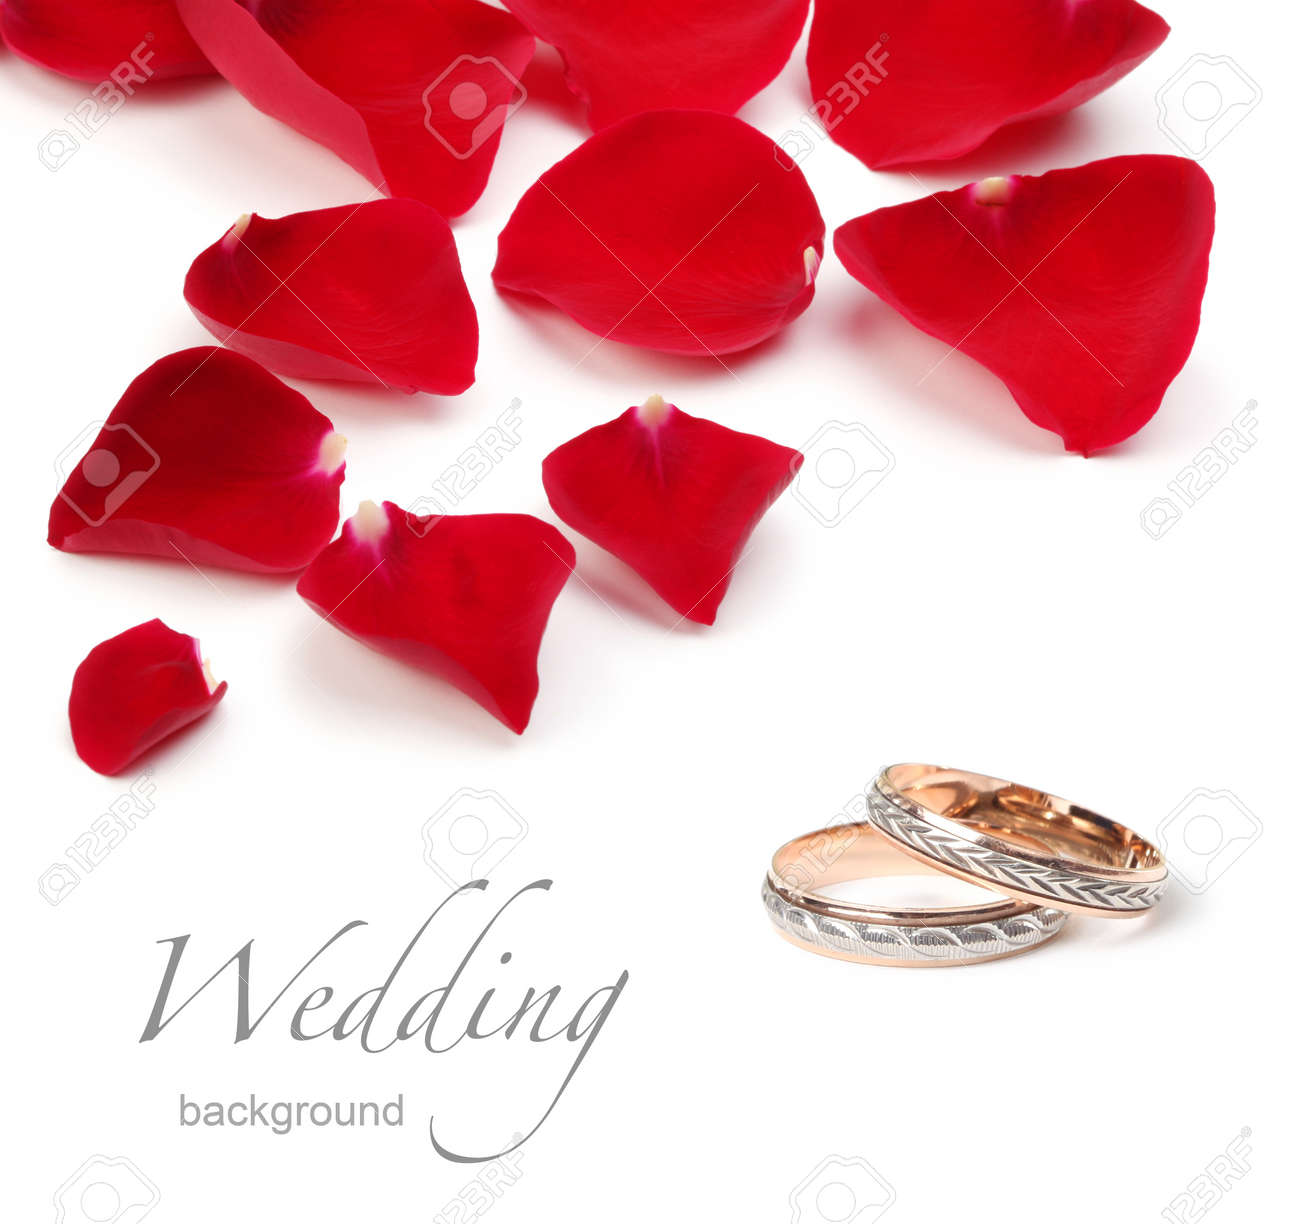 Wedding Rings And Rose Petals Stock Photo Picture And Royalty Free